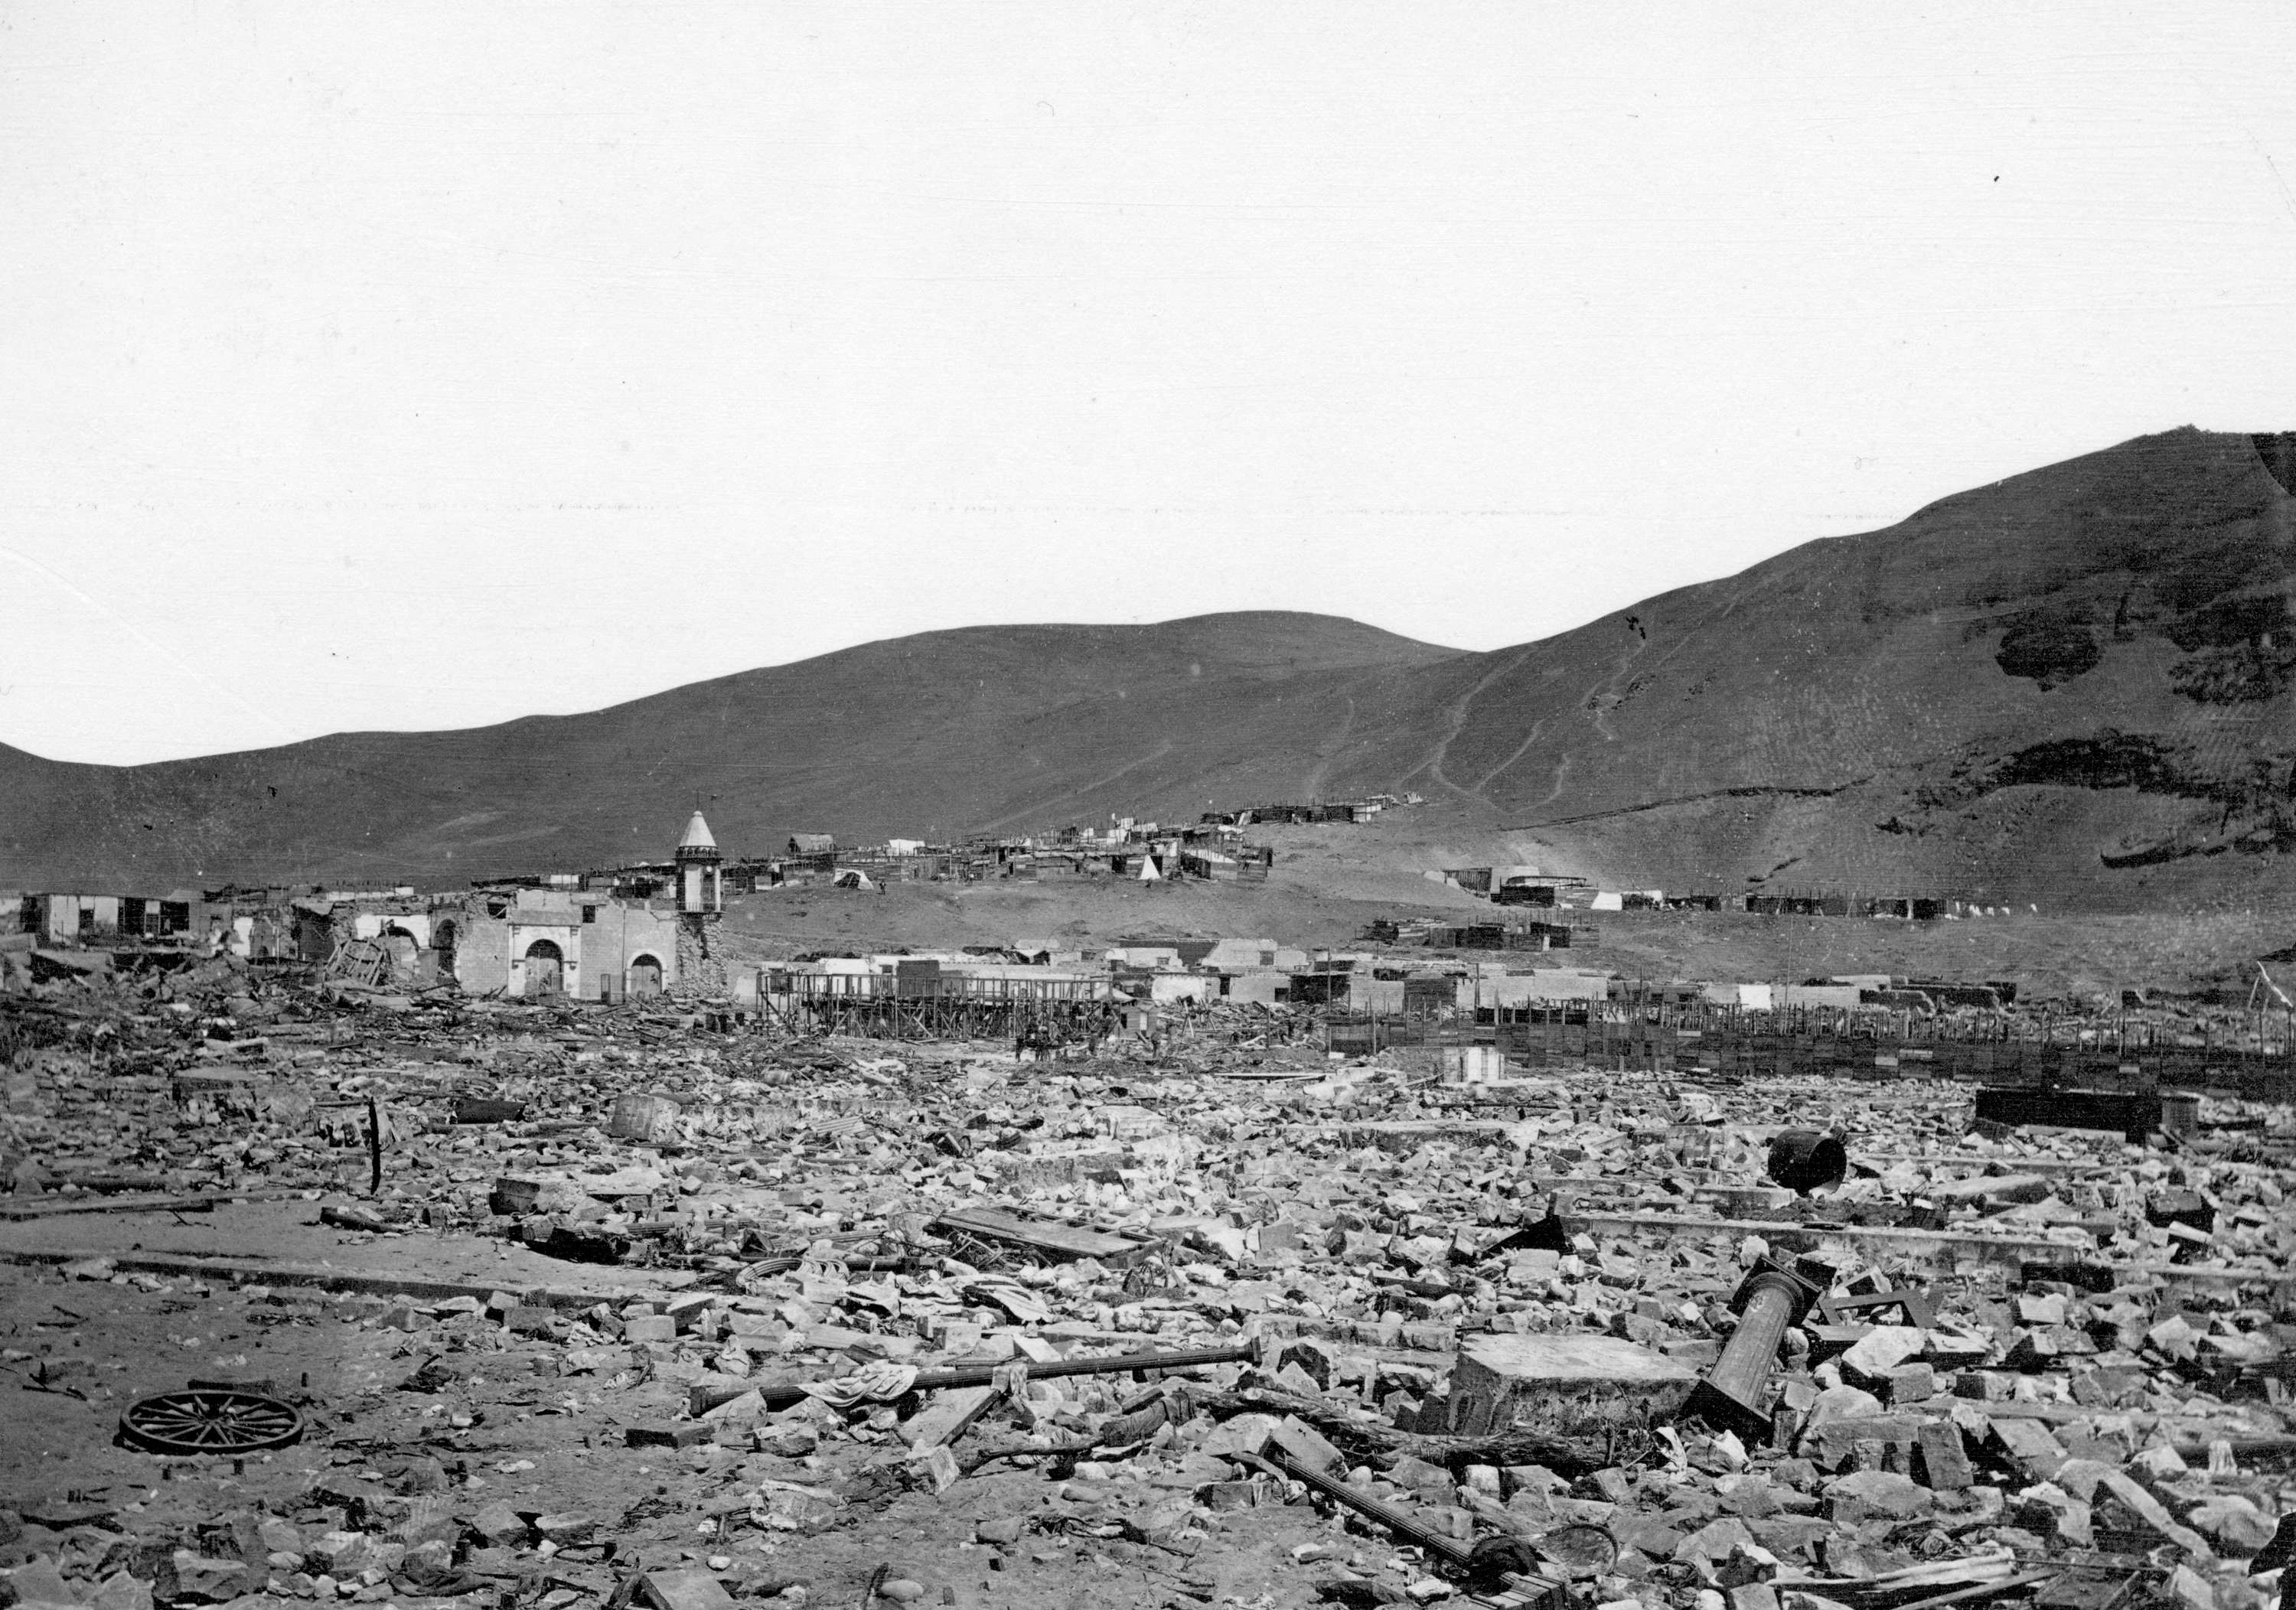 ... America after [the] earthquake of 1868